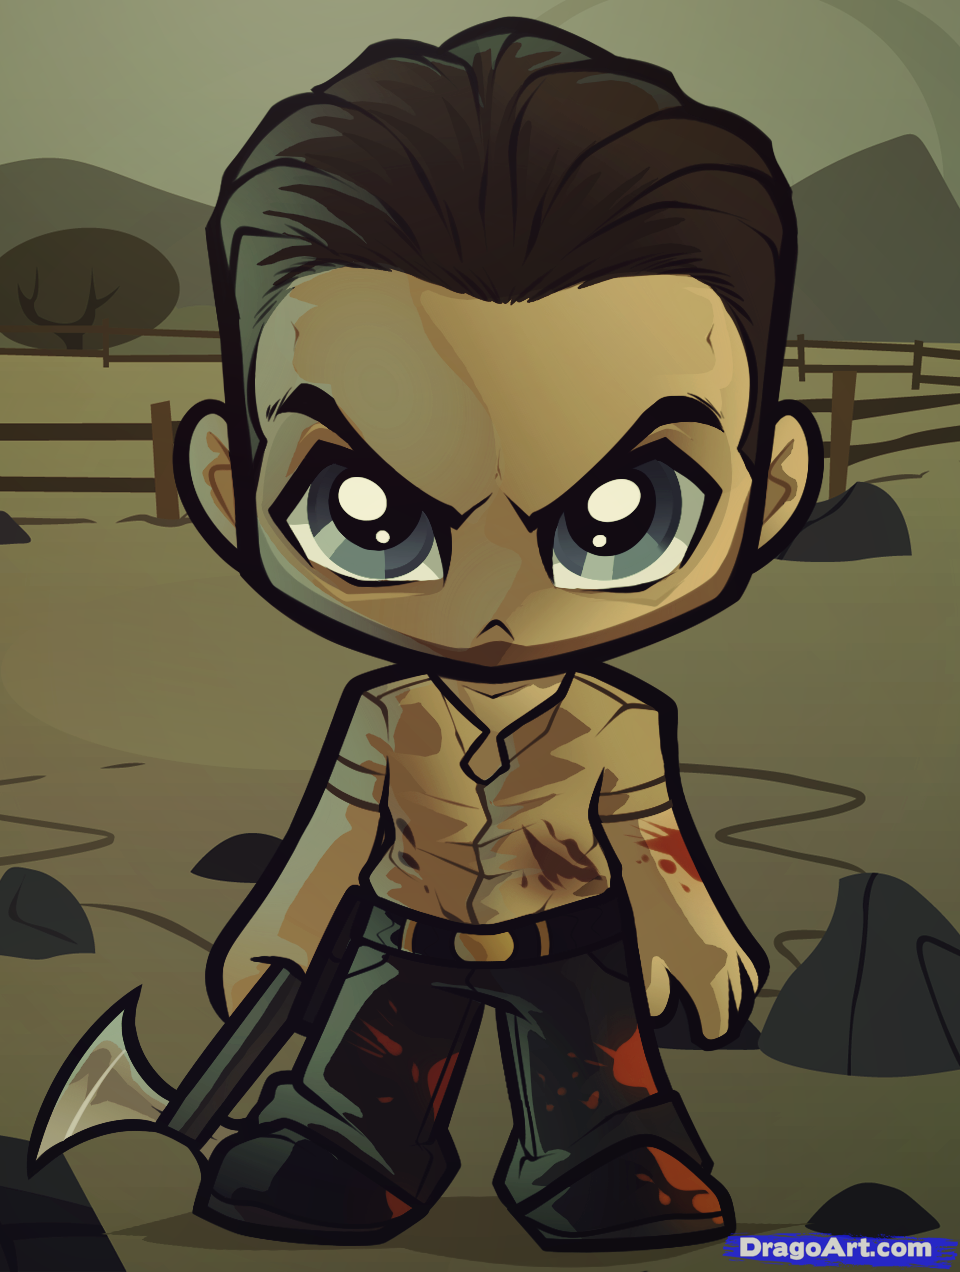 How To Draw Chibi Rick Grimes The Walking Dead Step By Step Walking Dead Art Chibi Drawings Chibi